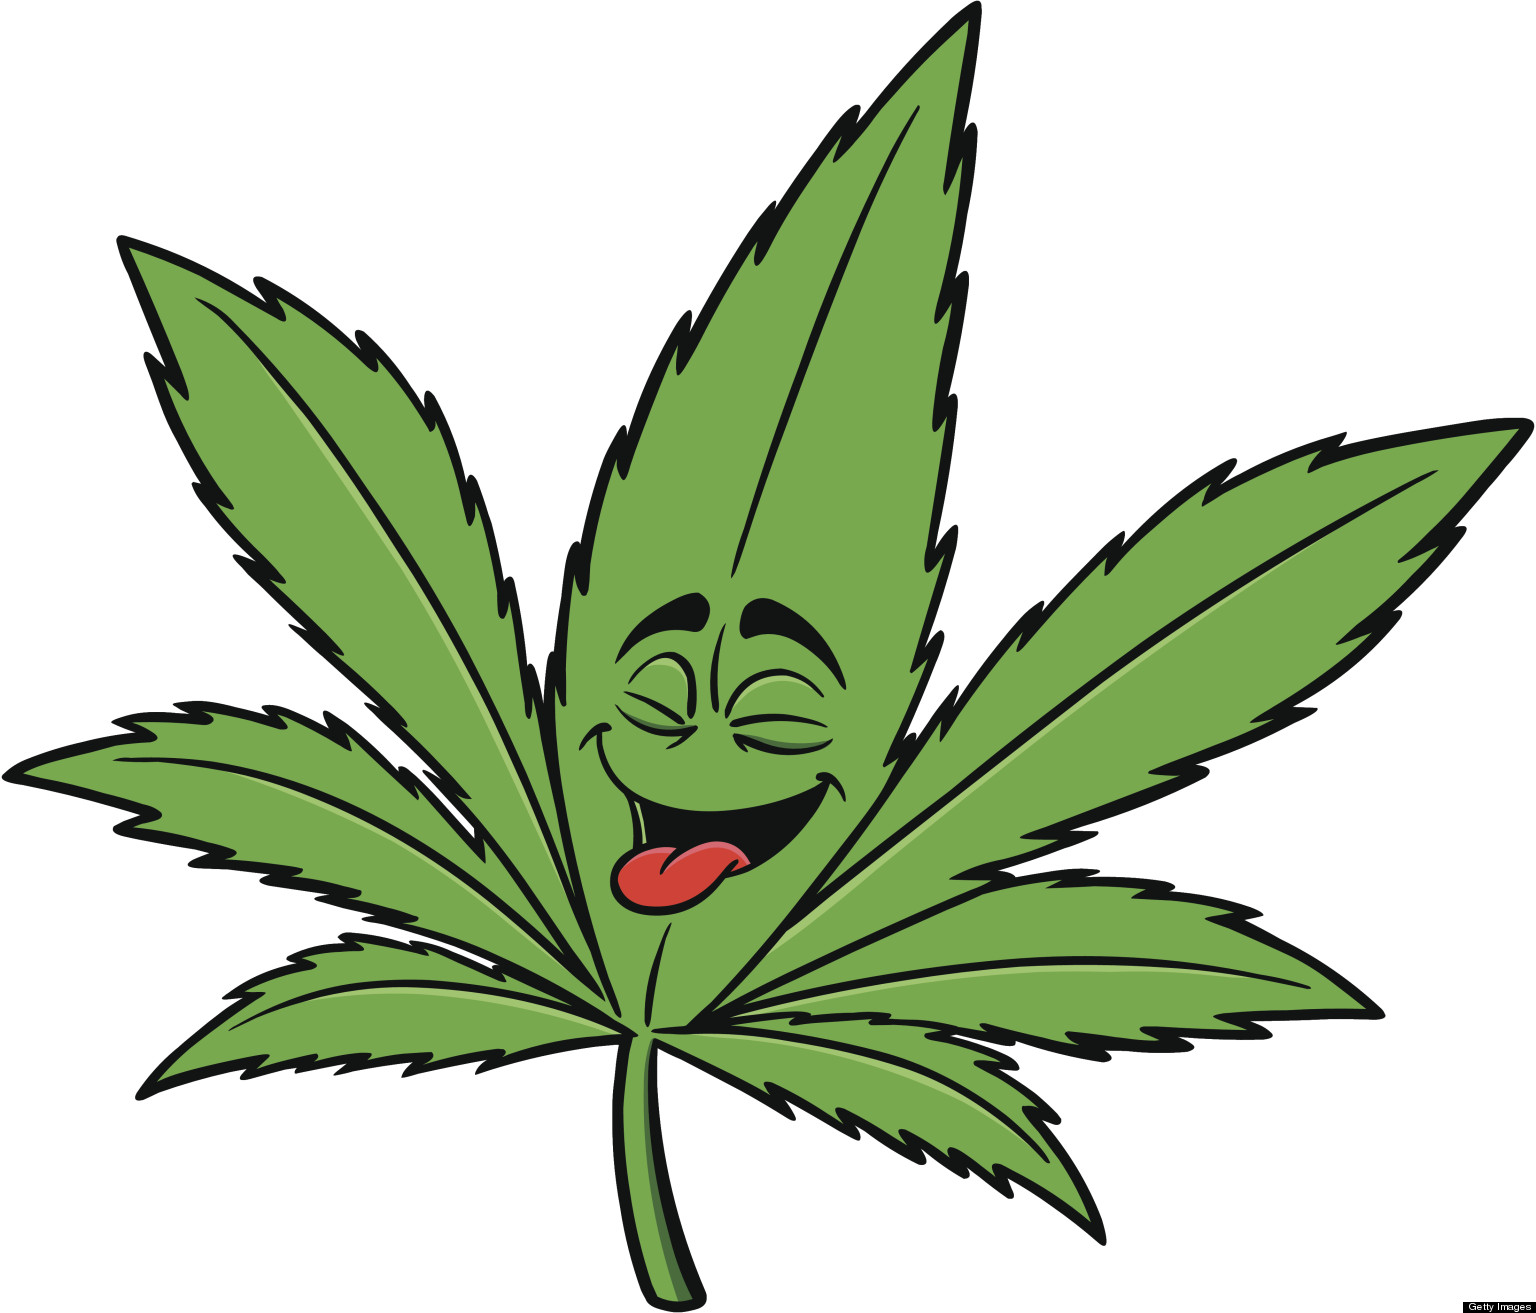 Cannabis Leaf Drawing I Image Car Pictures clipart free image.